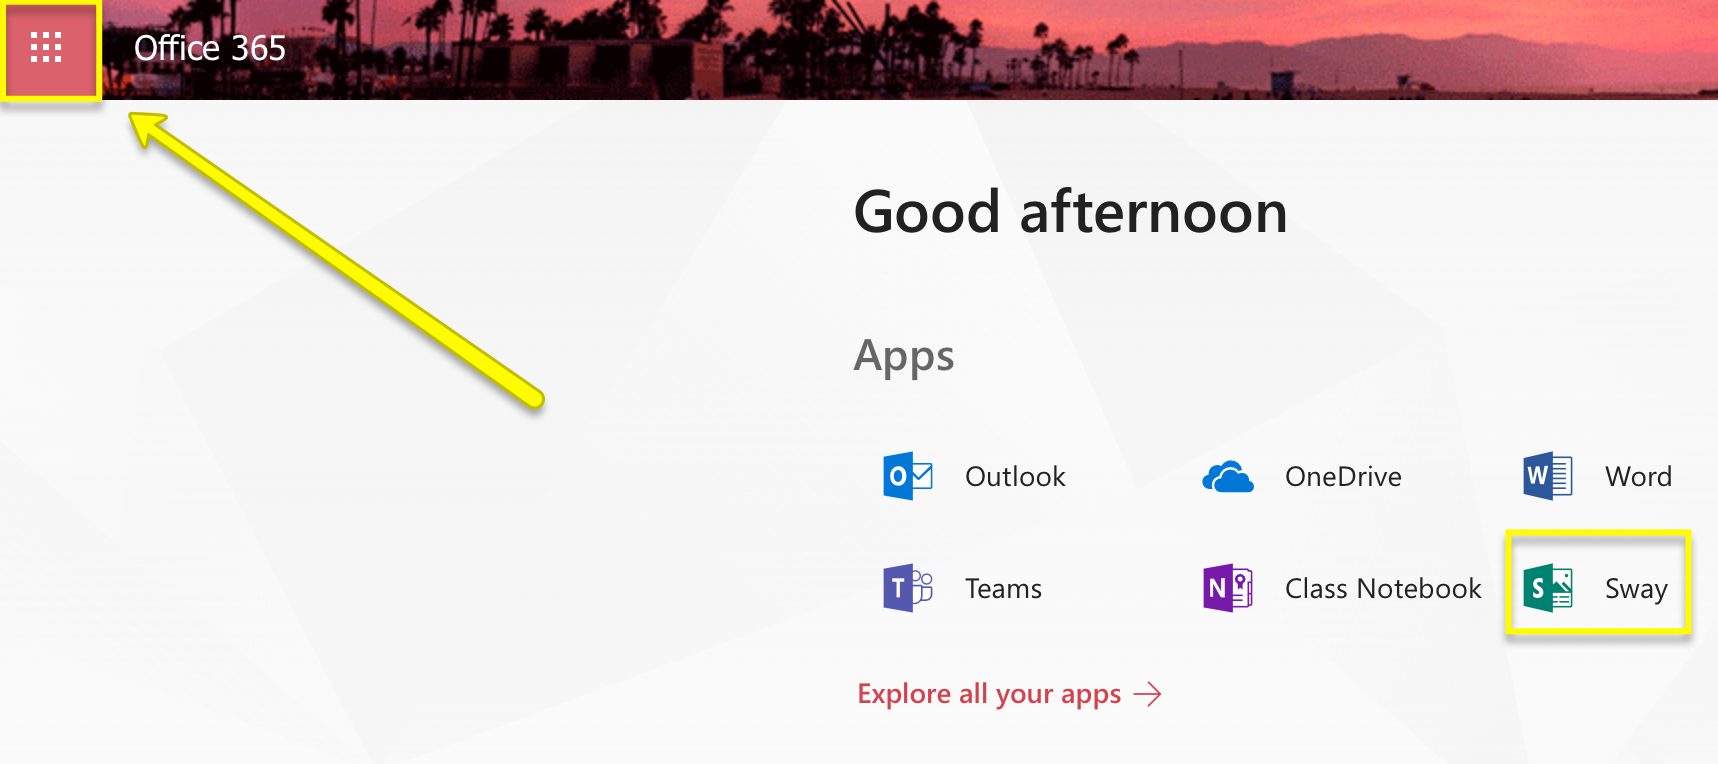 Image showing App launcher on the top left of the browser window in Office 365